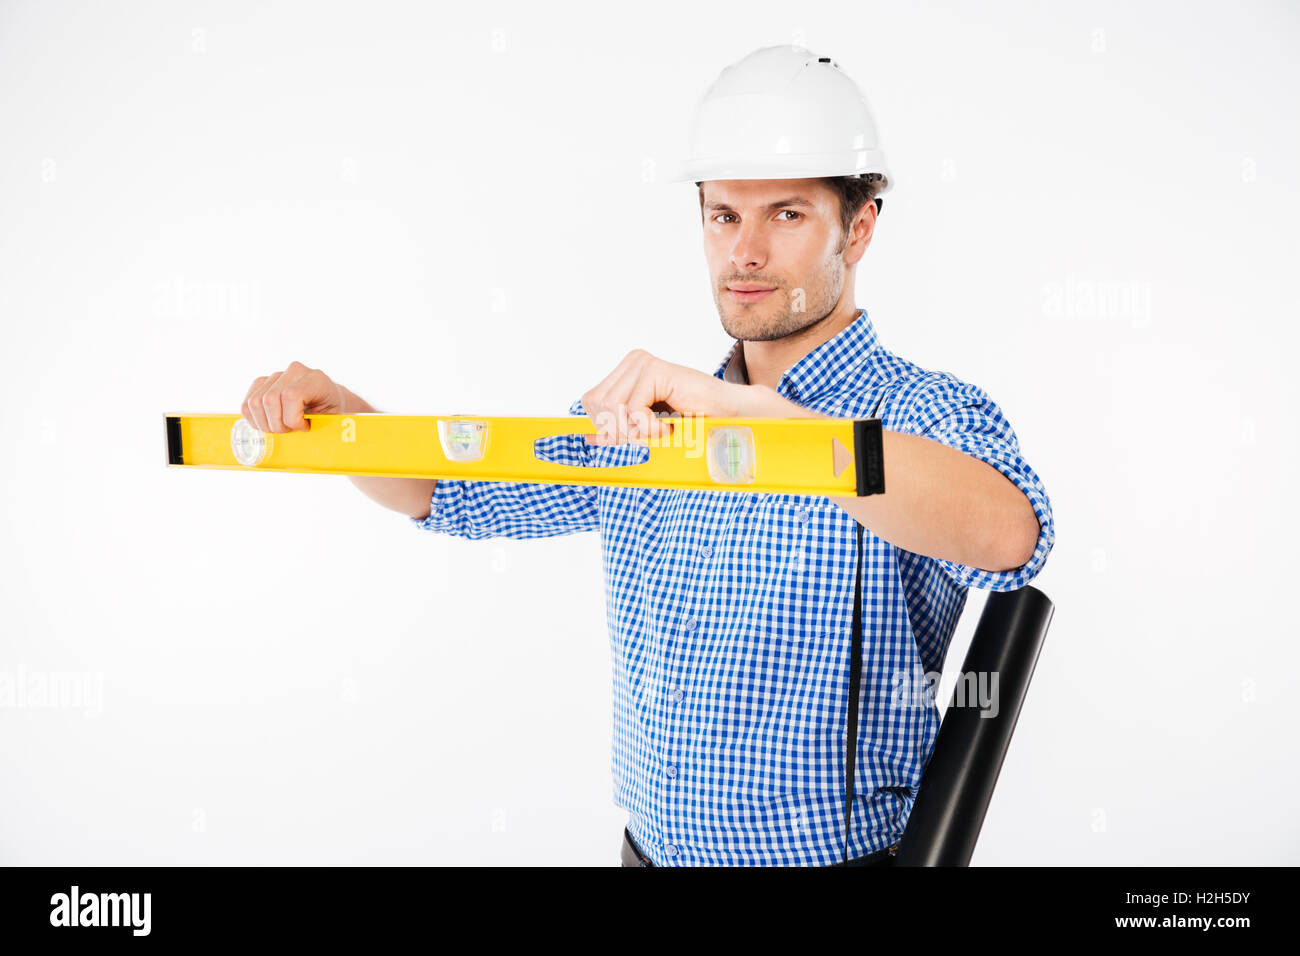 Serious young man building engineer in hard hat using spirit level - Stock Image